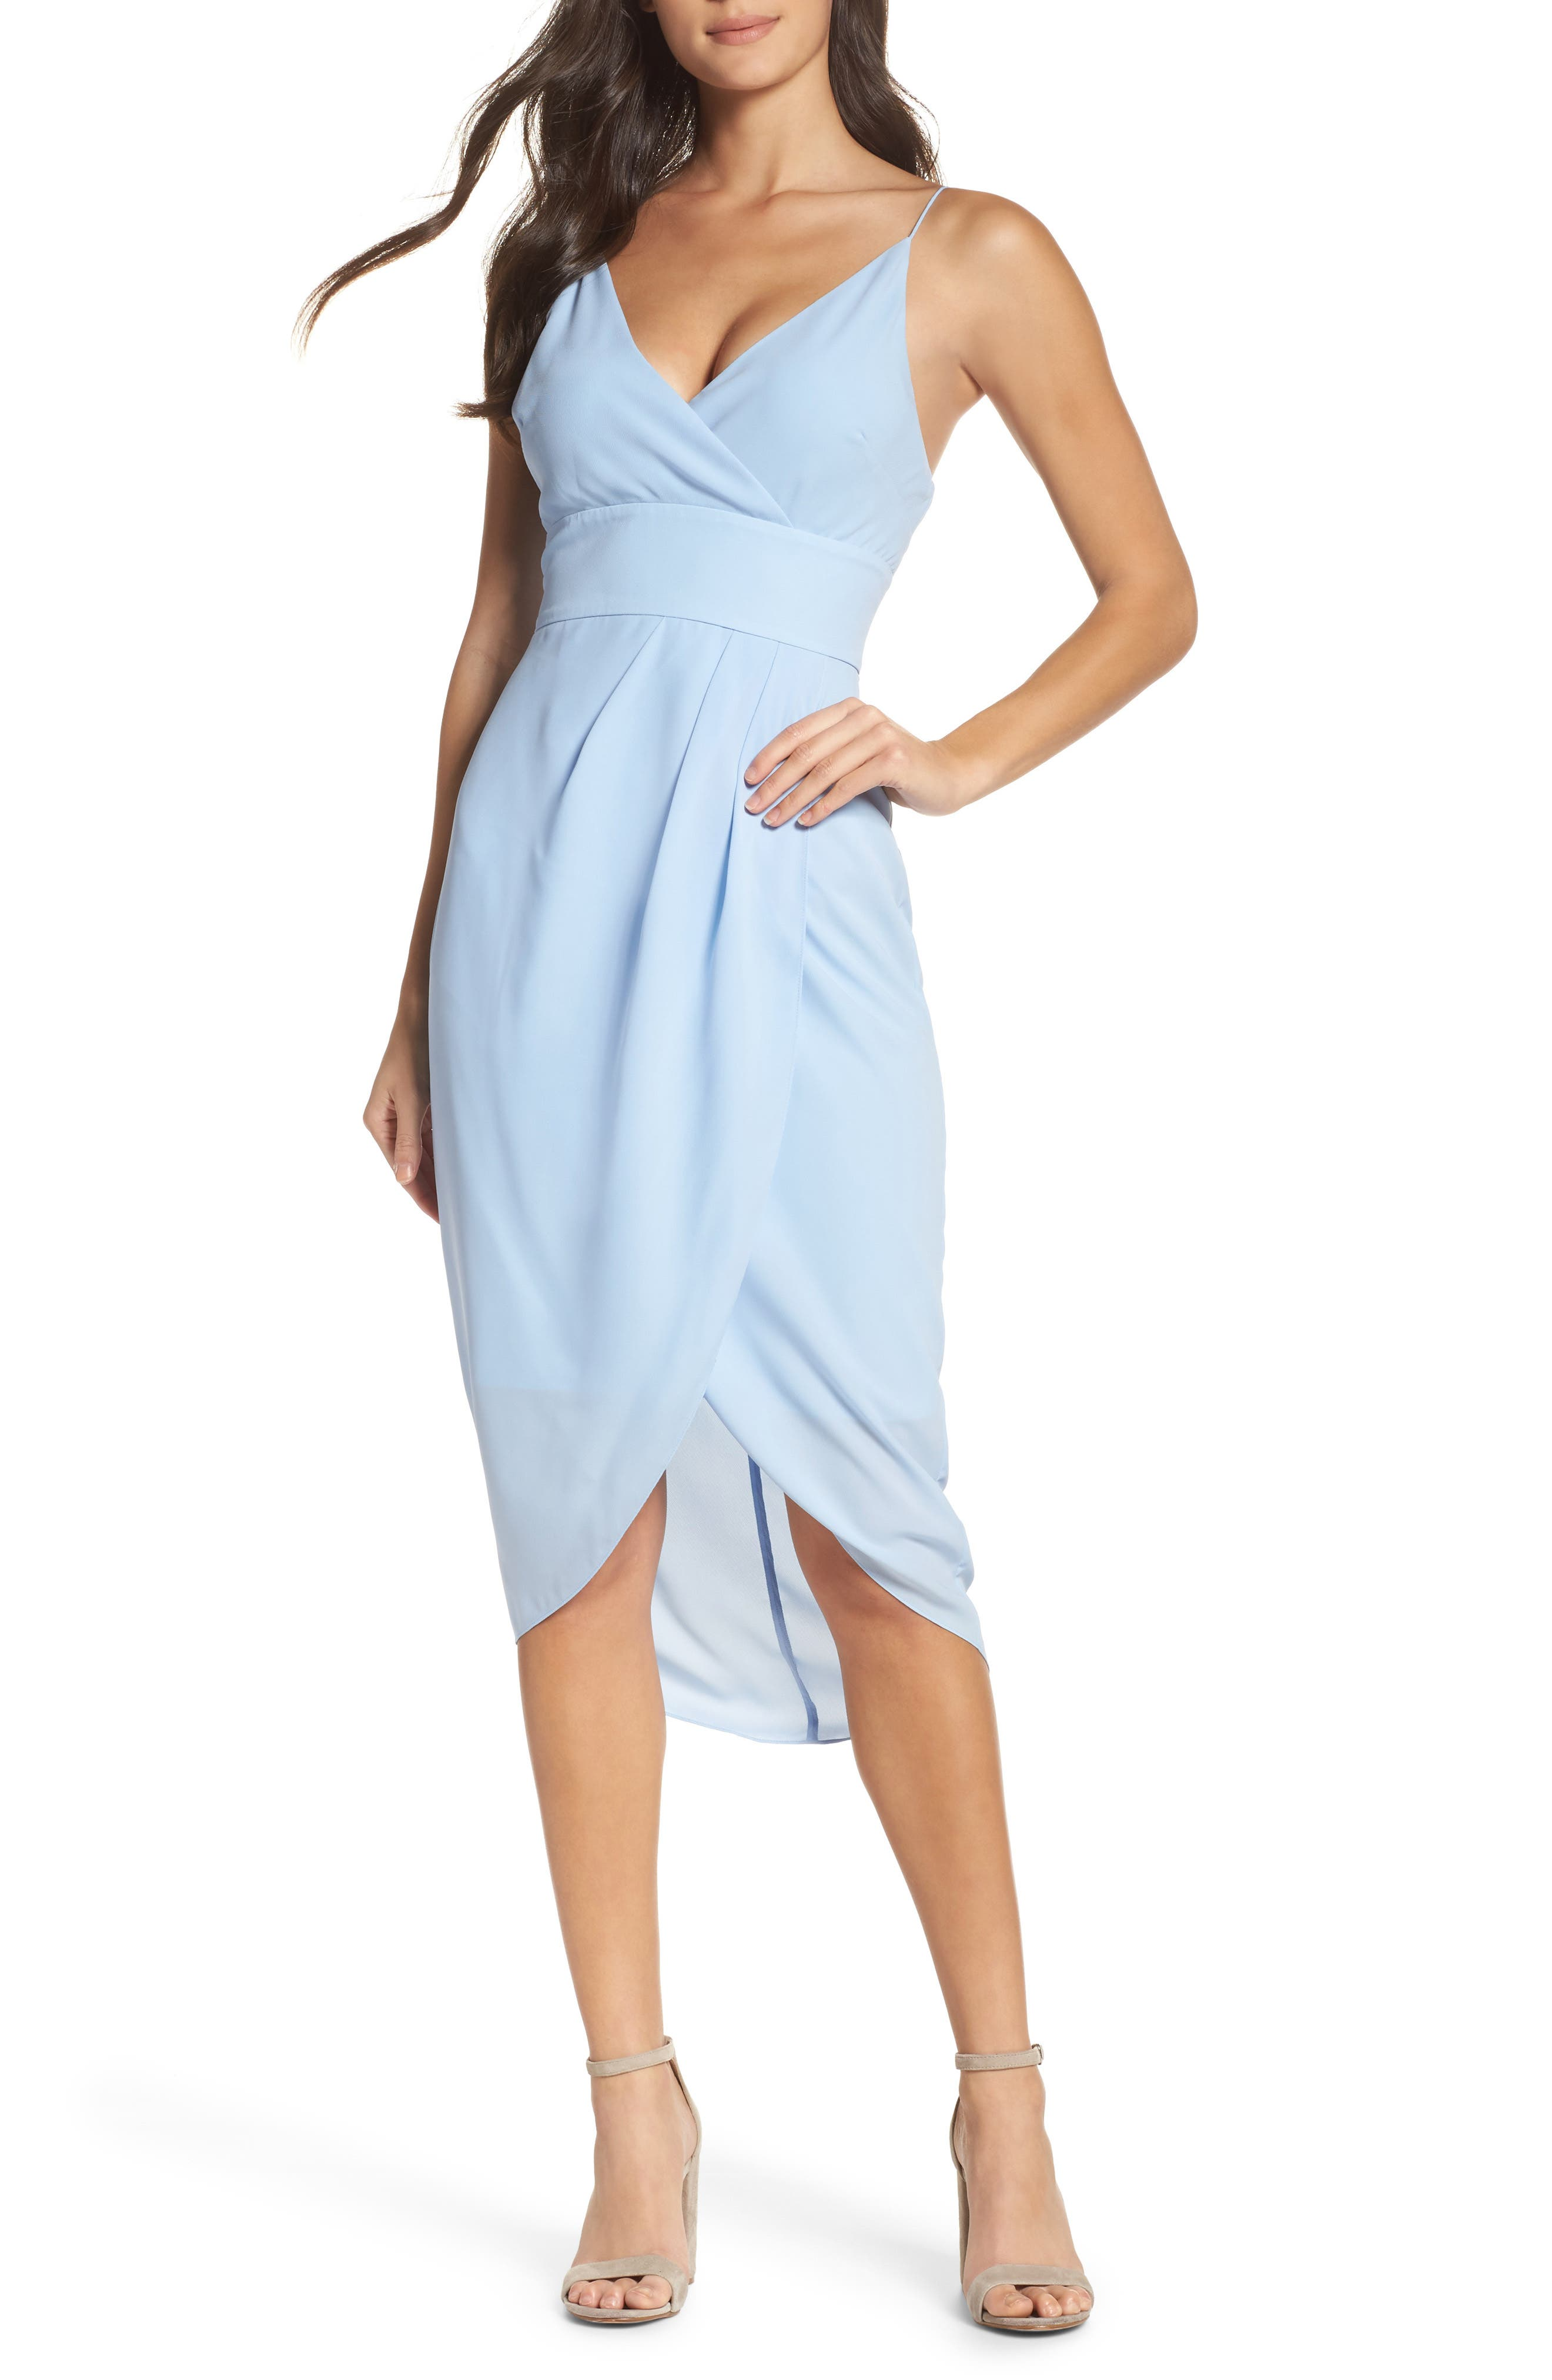 Lily Drape Sheath Dress,                             Main thumbnail 1, color,                             Pale Blue